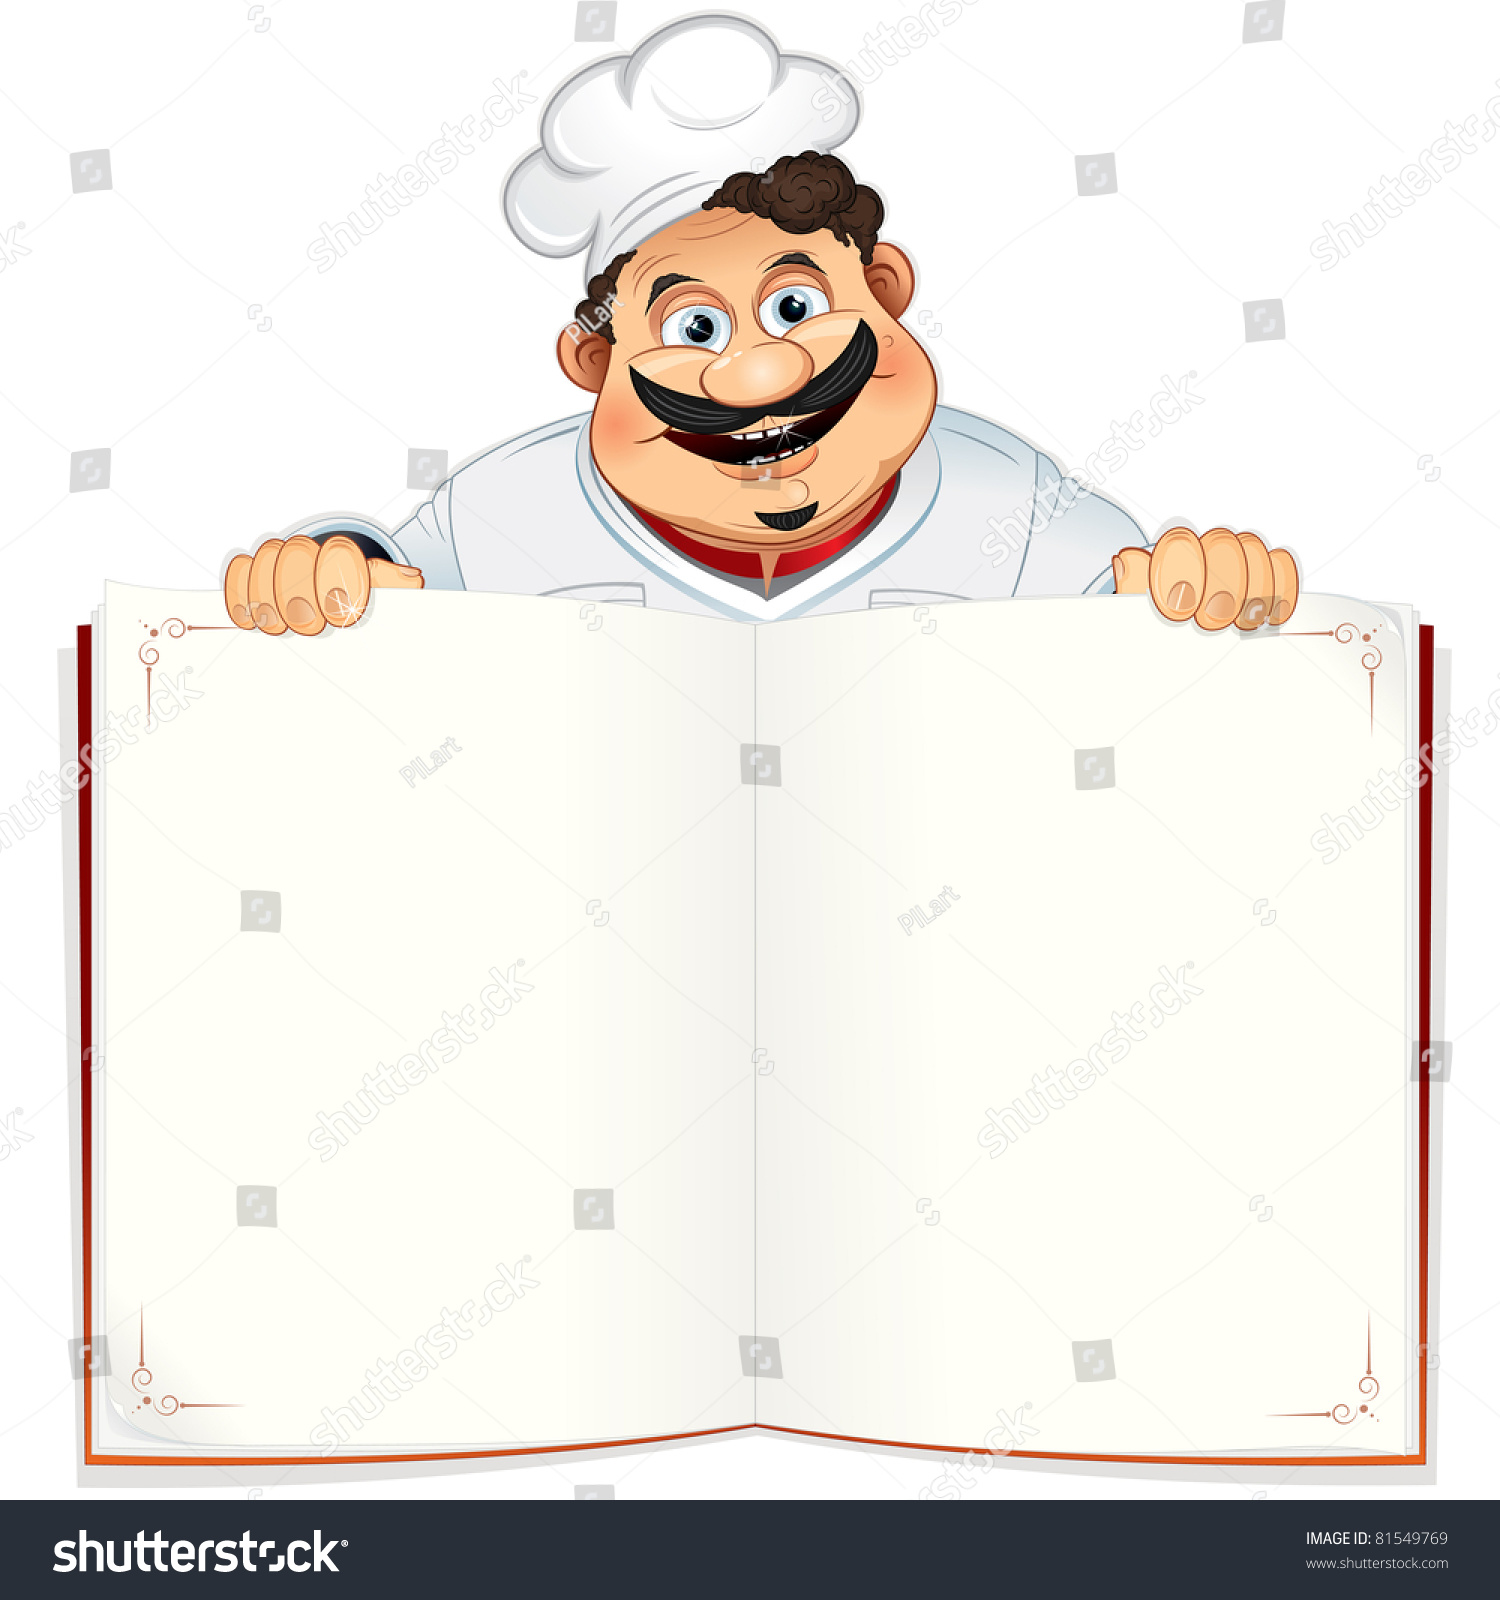 03 furthermore Stock Vector Funny Chef With Blank Cookbook Menu Or Notepad as well Fried bake together with Duxelles furthermore Upma. on cookbook template